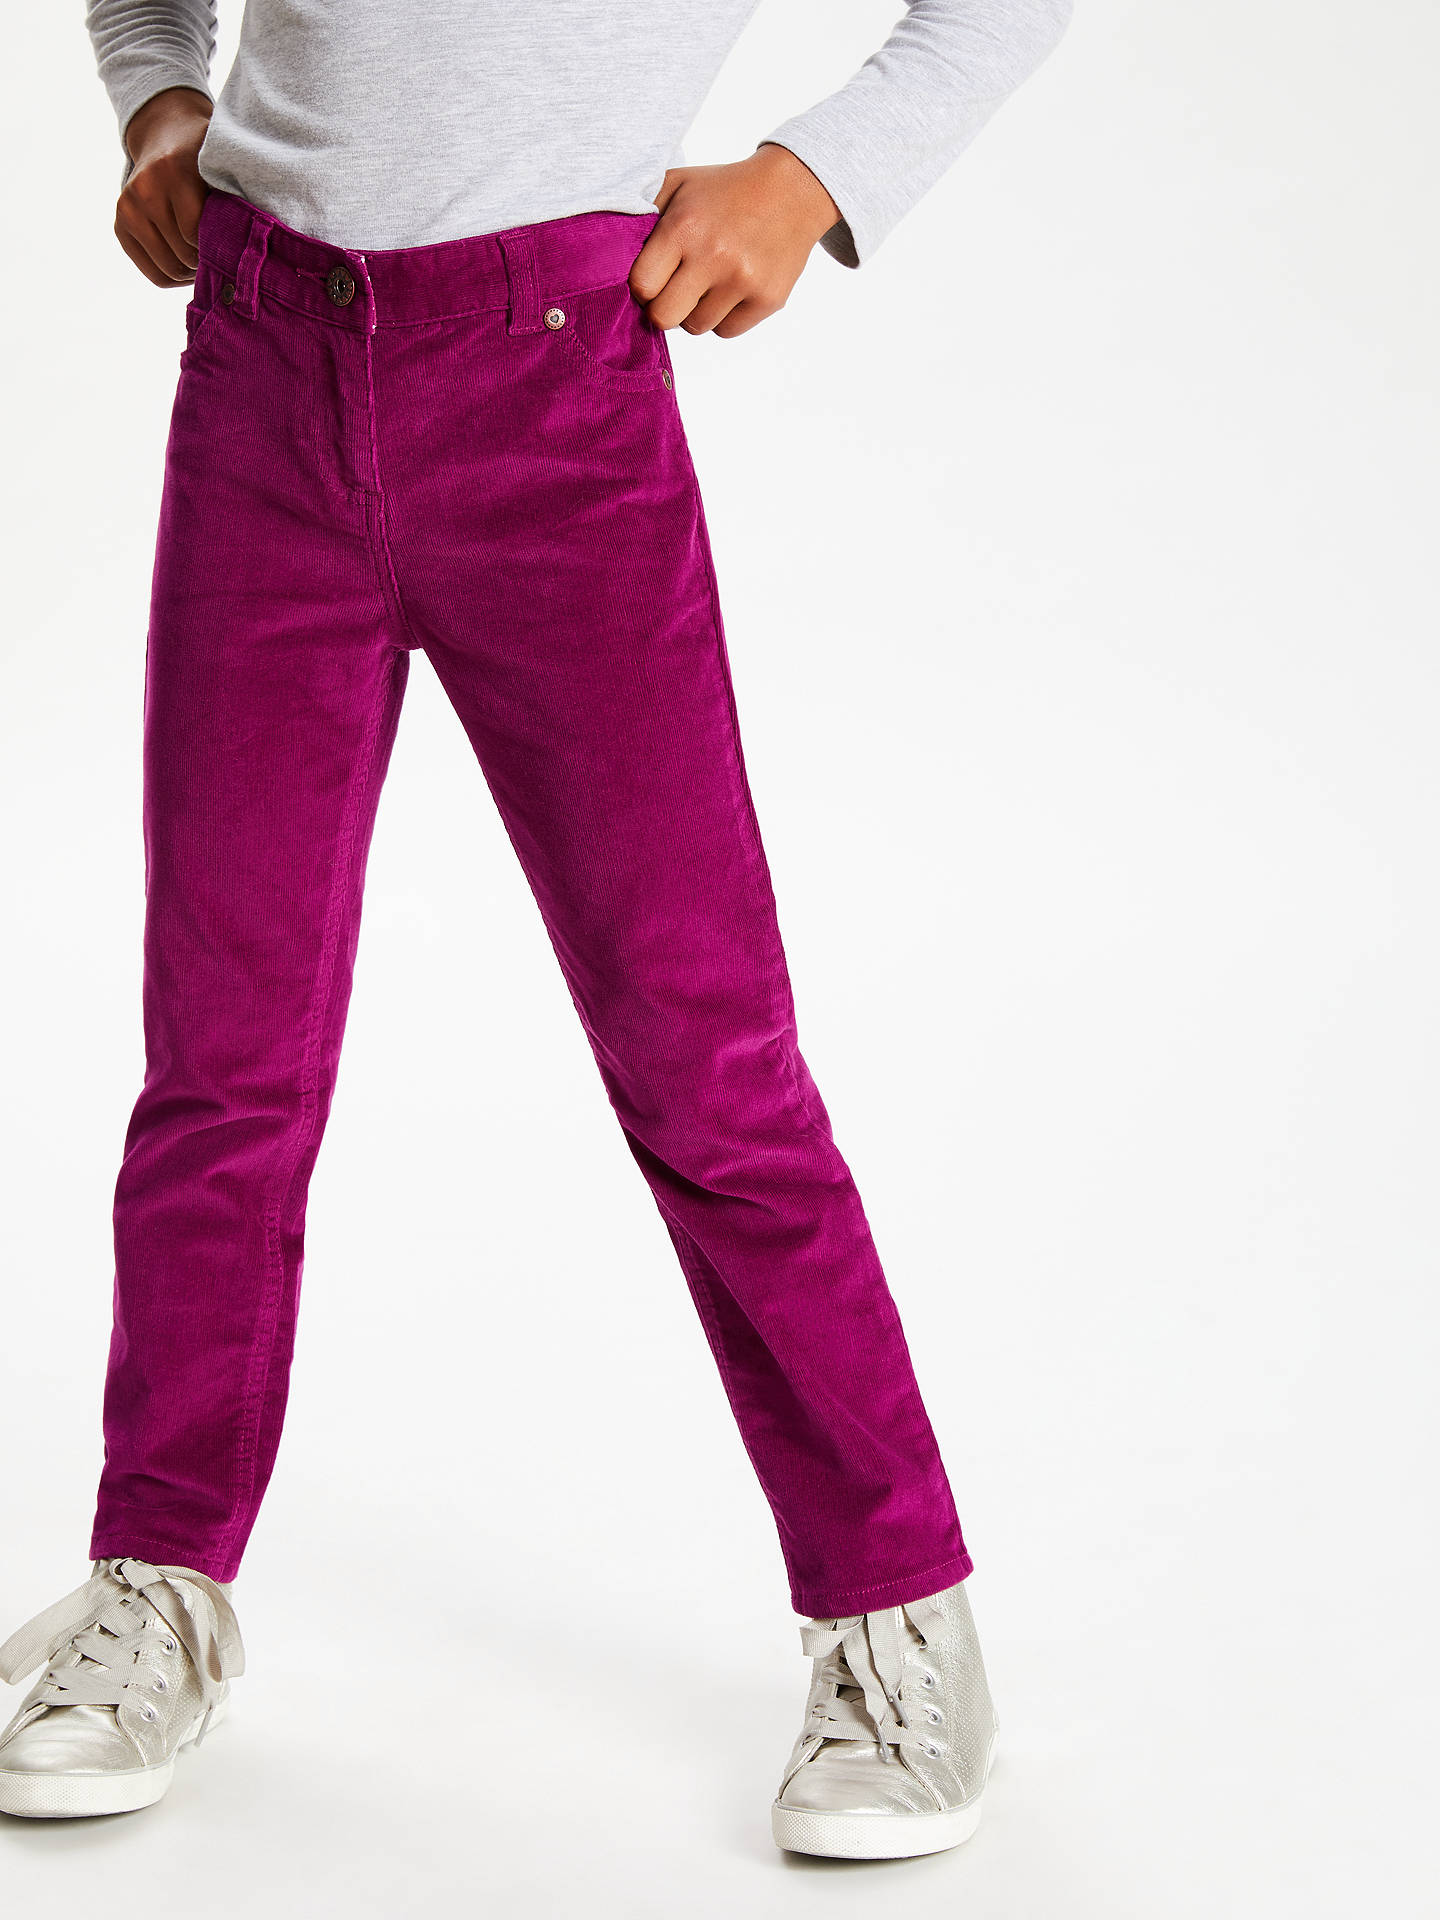 BuyJohn Lewis & Partners Girls' Corduroy Trousers, Berry, 2 years Online at johnlewis.com